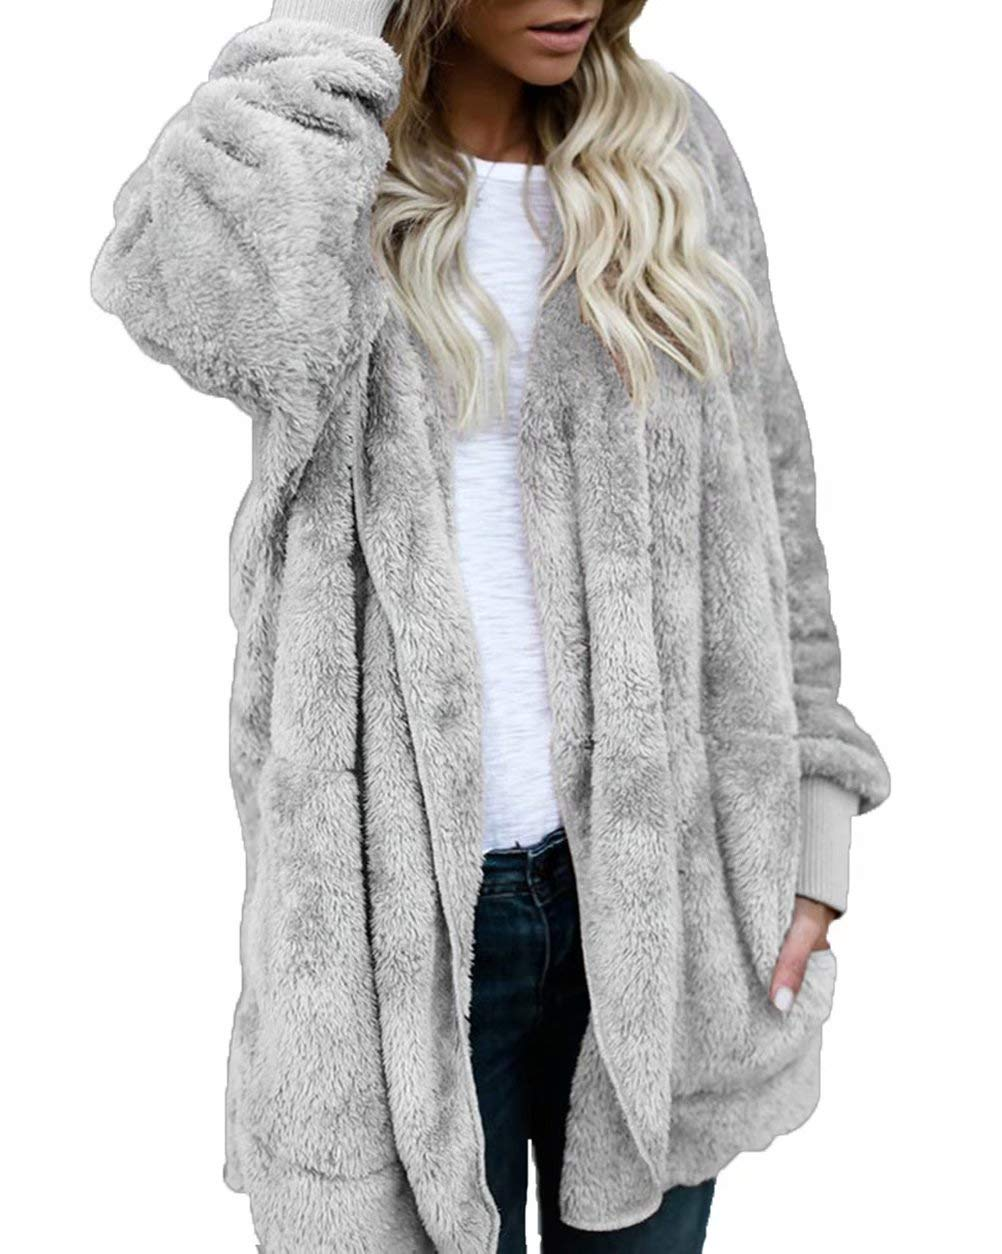 Adogirl Women Casual Oversized Pockets Draped Open Front Hooded Jacket Cardigan Gray XL